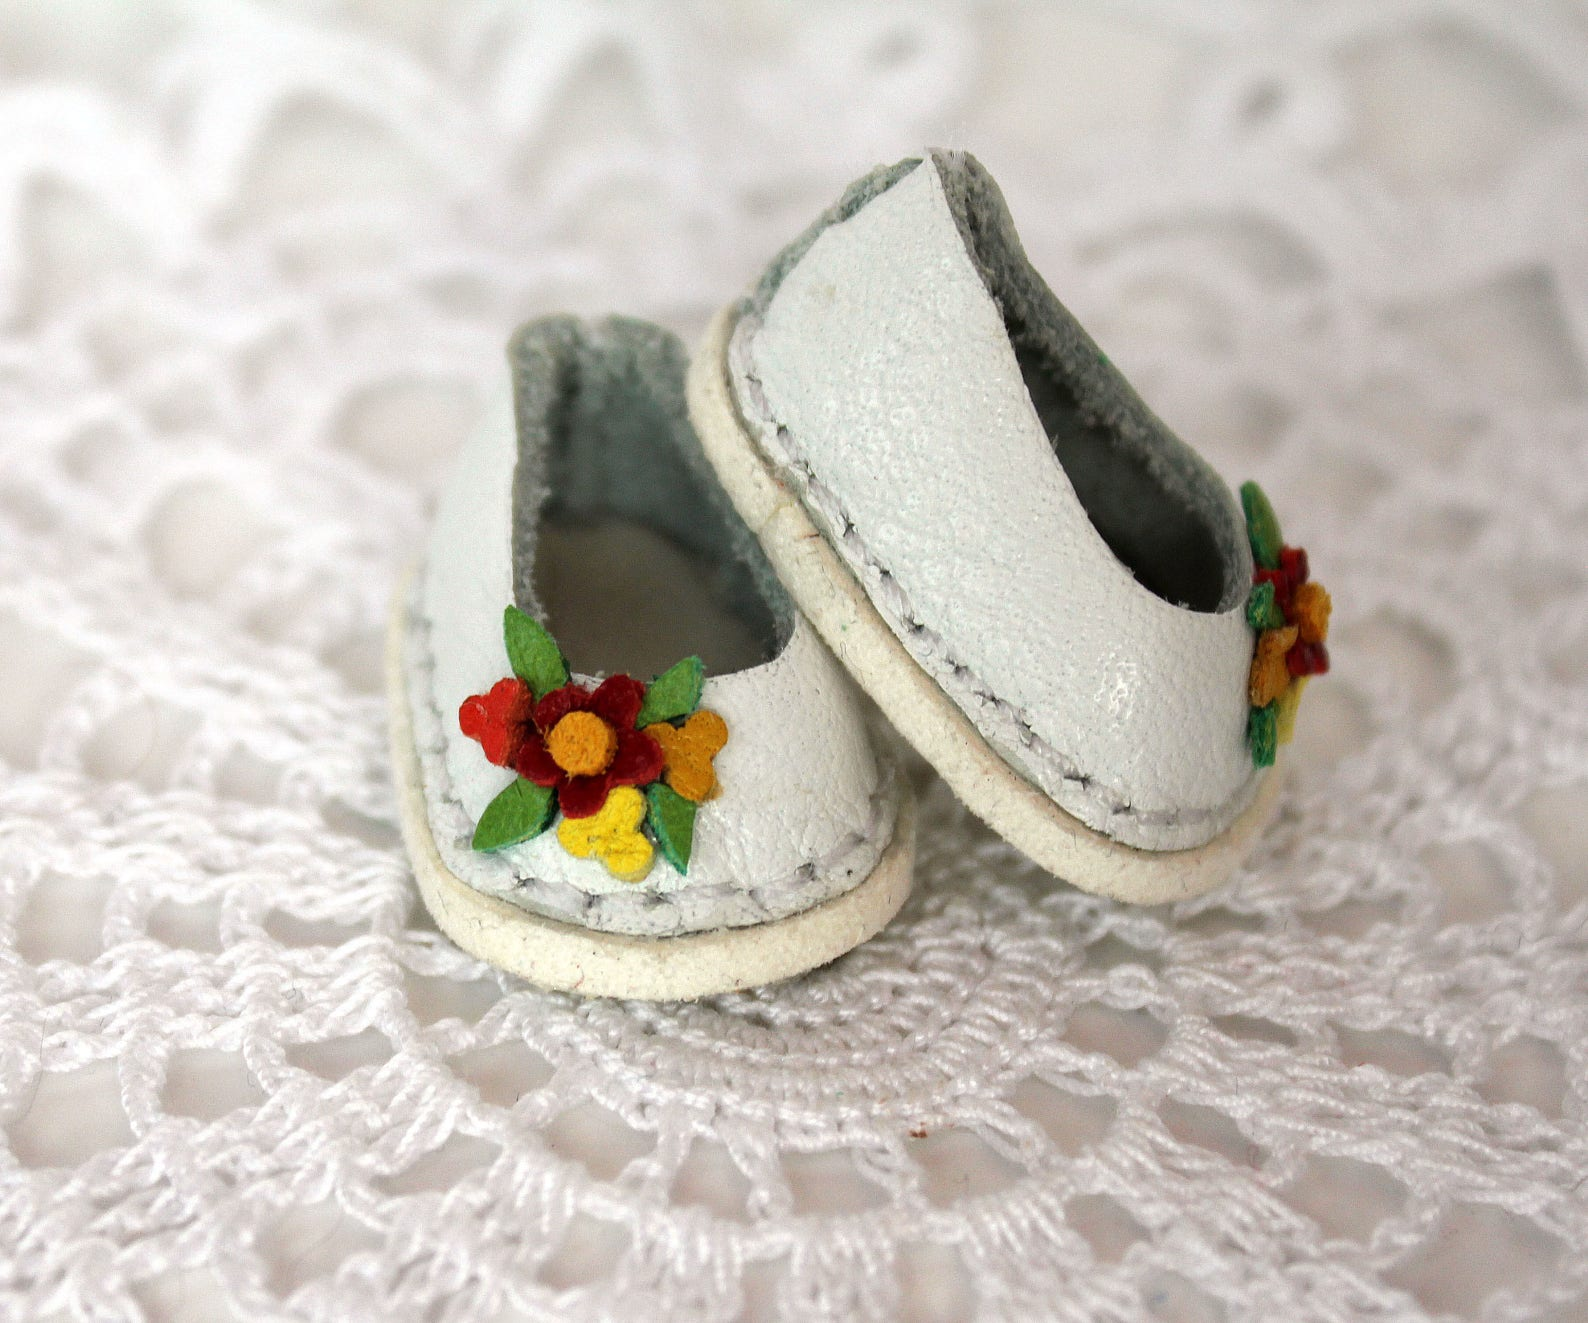 preorder! irrealdoll shoes / irrealdoll leather ballet shoes